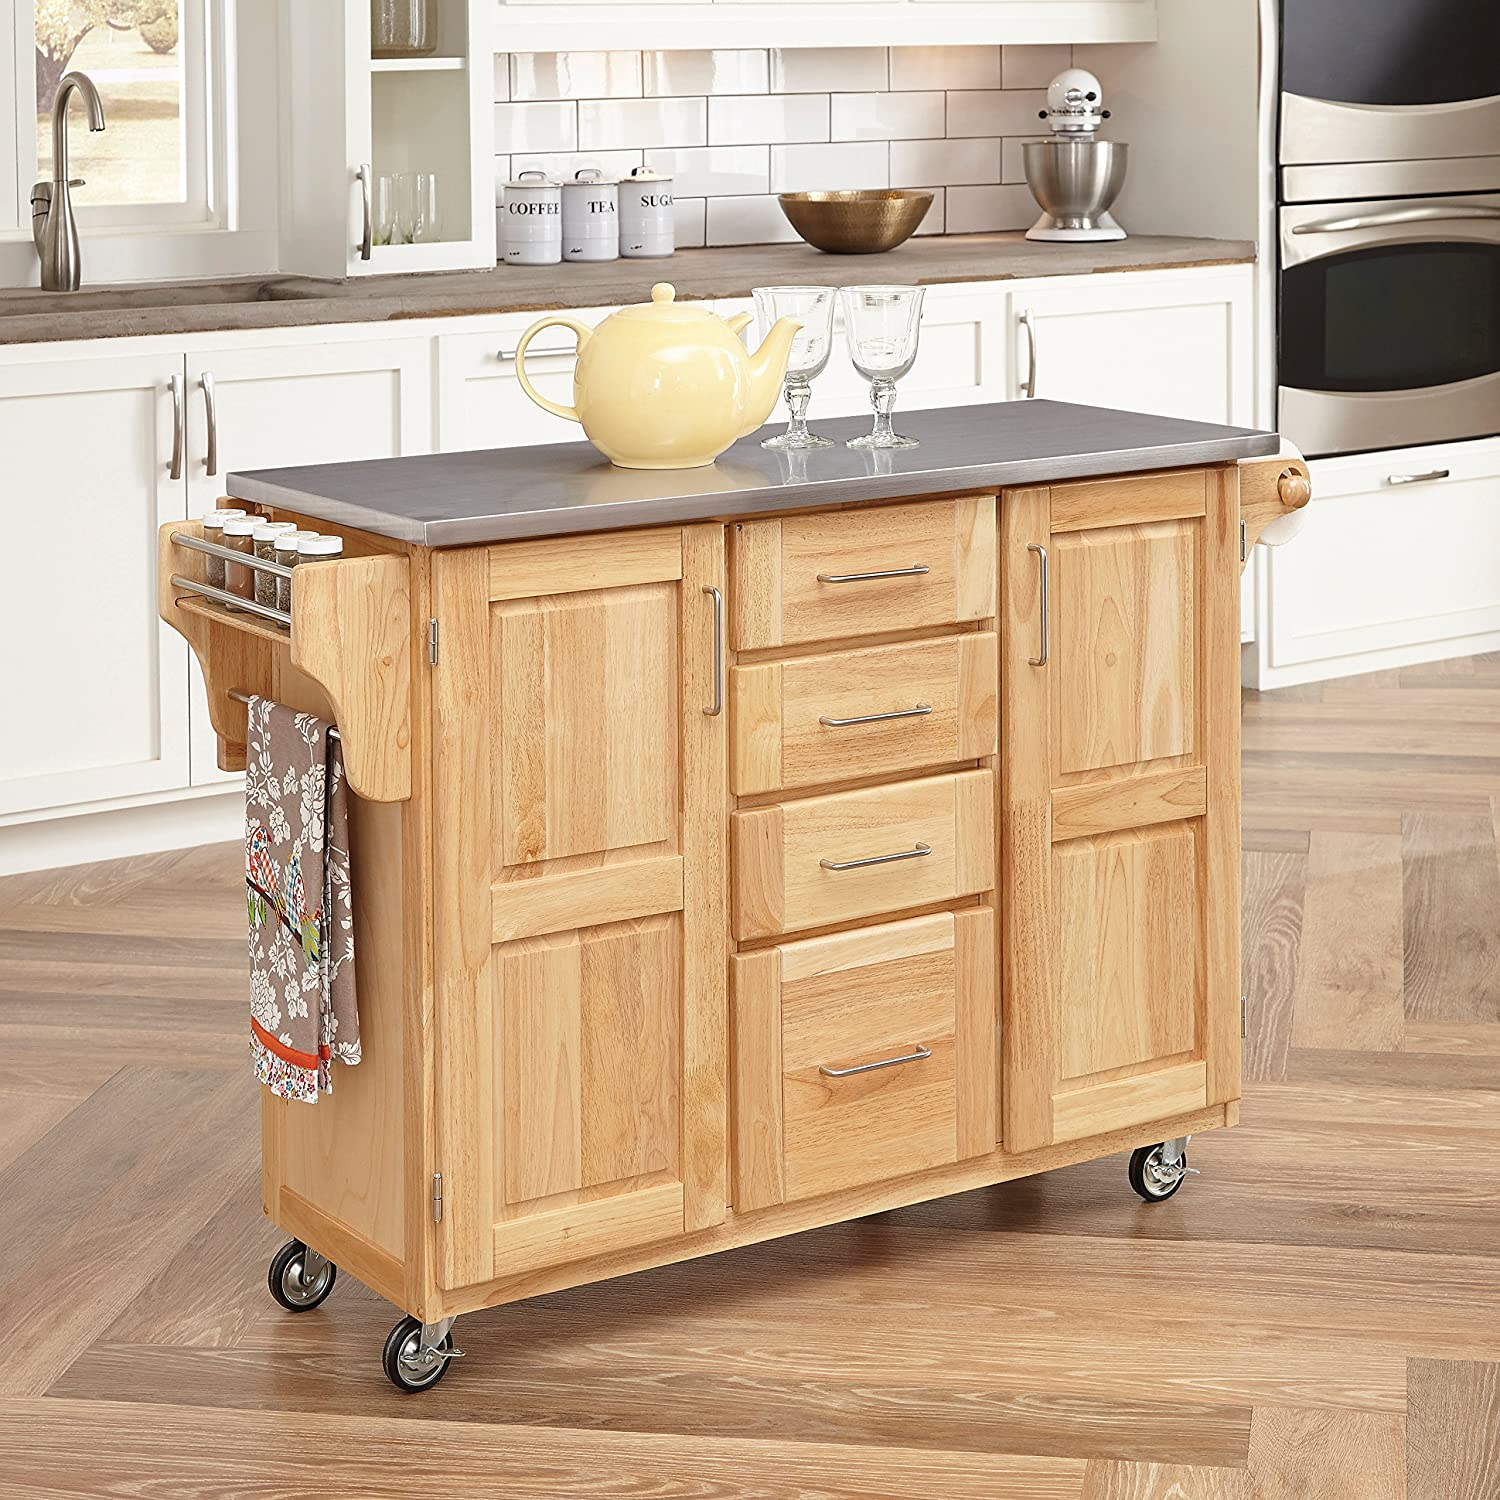 Kitchen Islands And Carts Make Even A Small Kitchen Seem